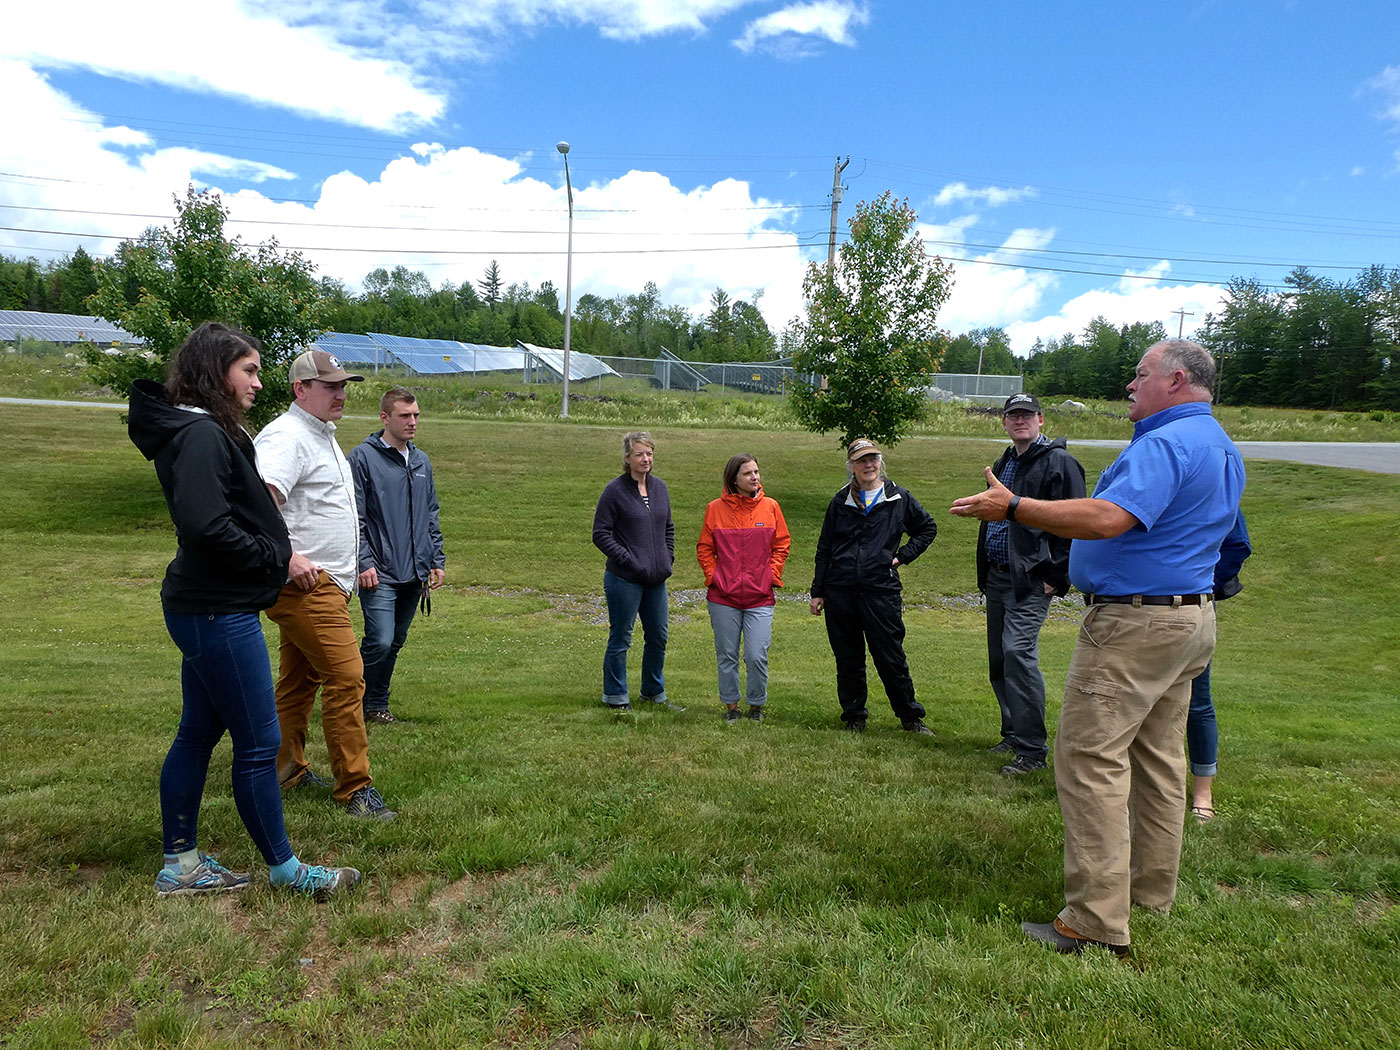 Superintendent Calvin Ames of Madison Electric Works speaks with NRCM staff during a recent visit.